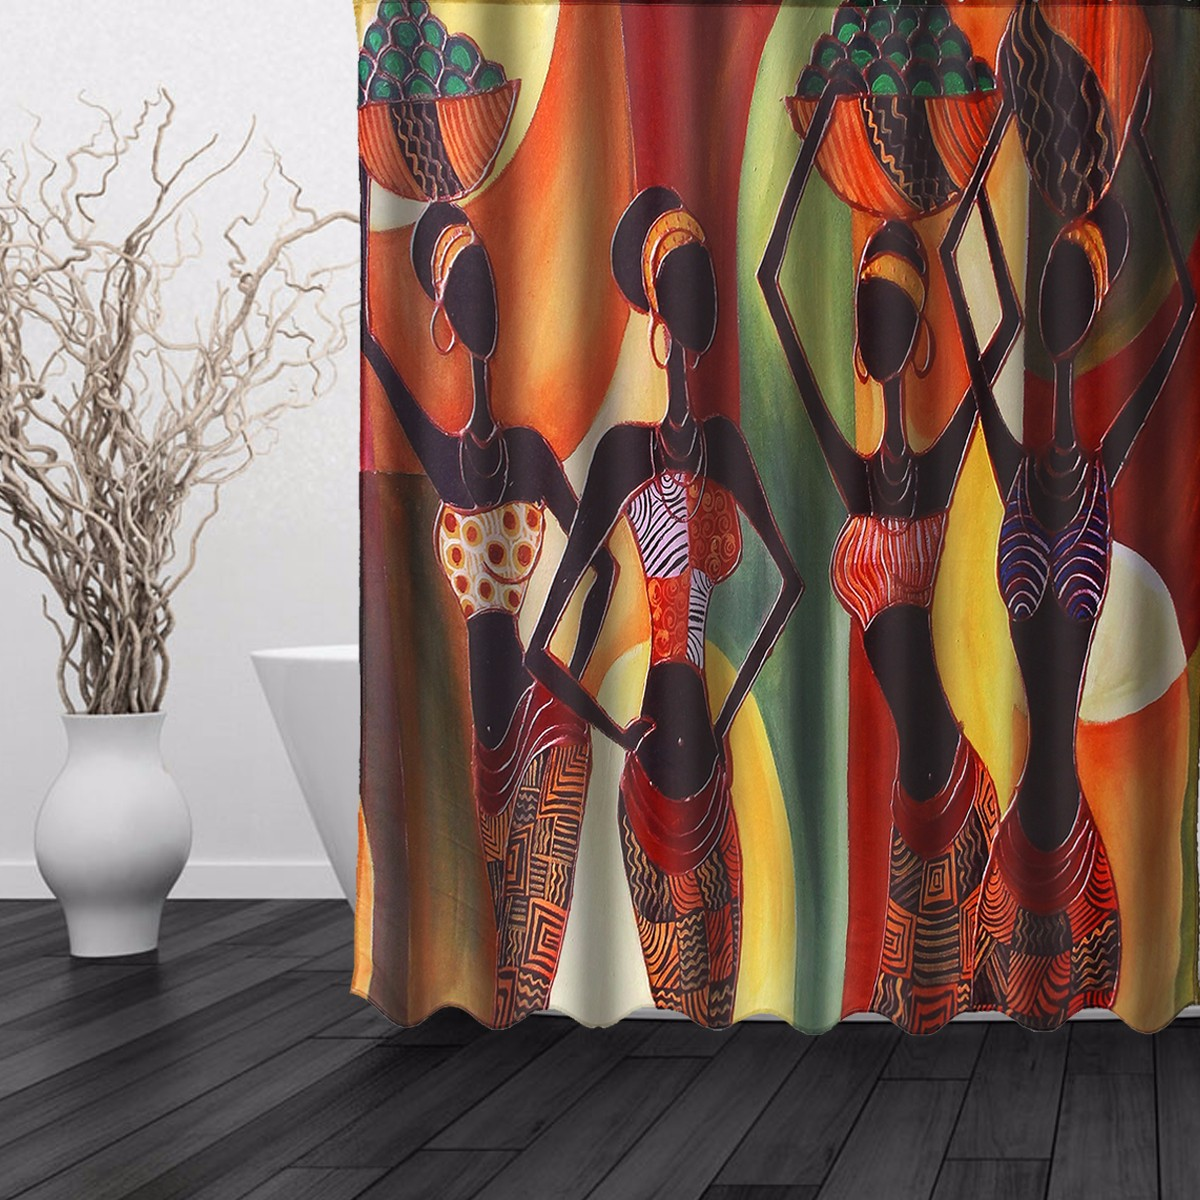 African Woman Waterproof Bathroom Shower Curtain Art Decor Afrocentric In  Tribal Dresses 60 X 72 Inch